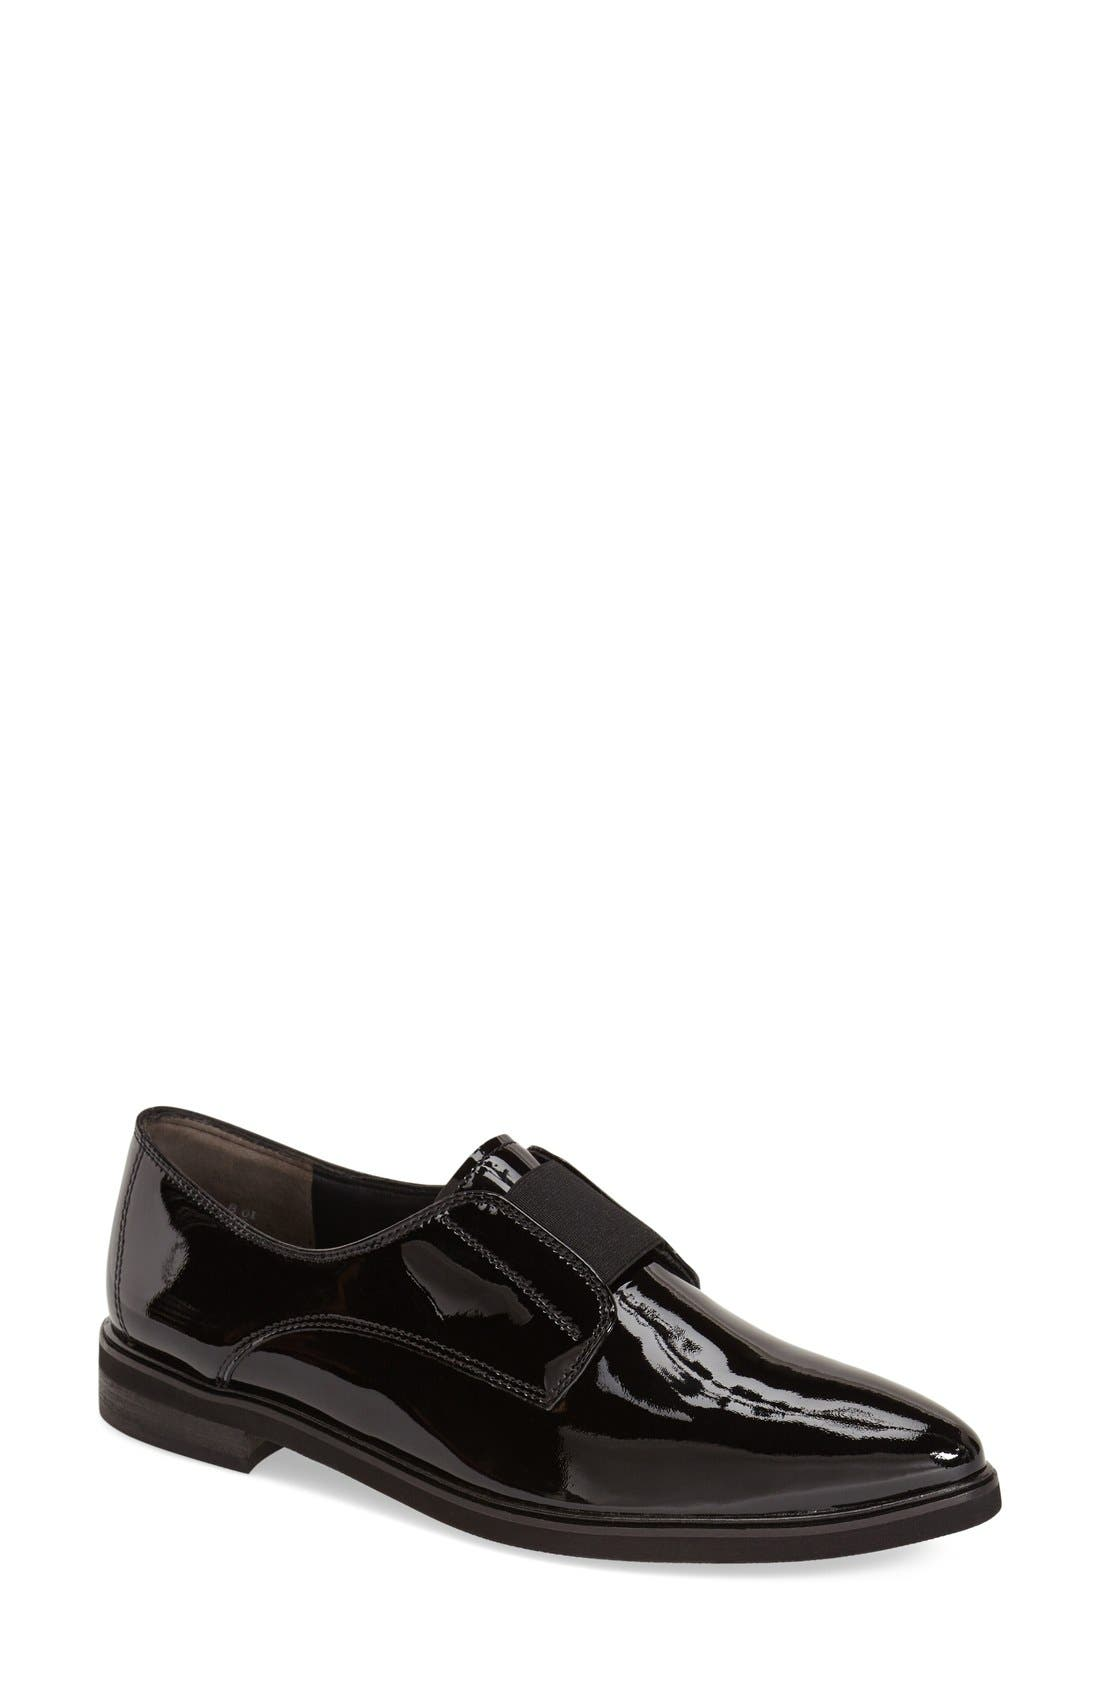 Alternate Image 1 Selected - Paul Green 'Evana' Oxford Loafer (Women)